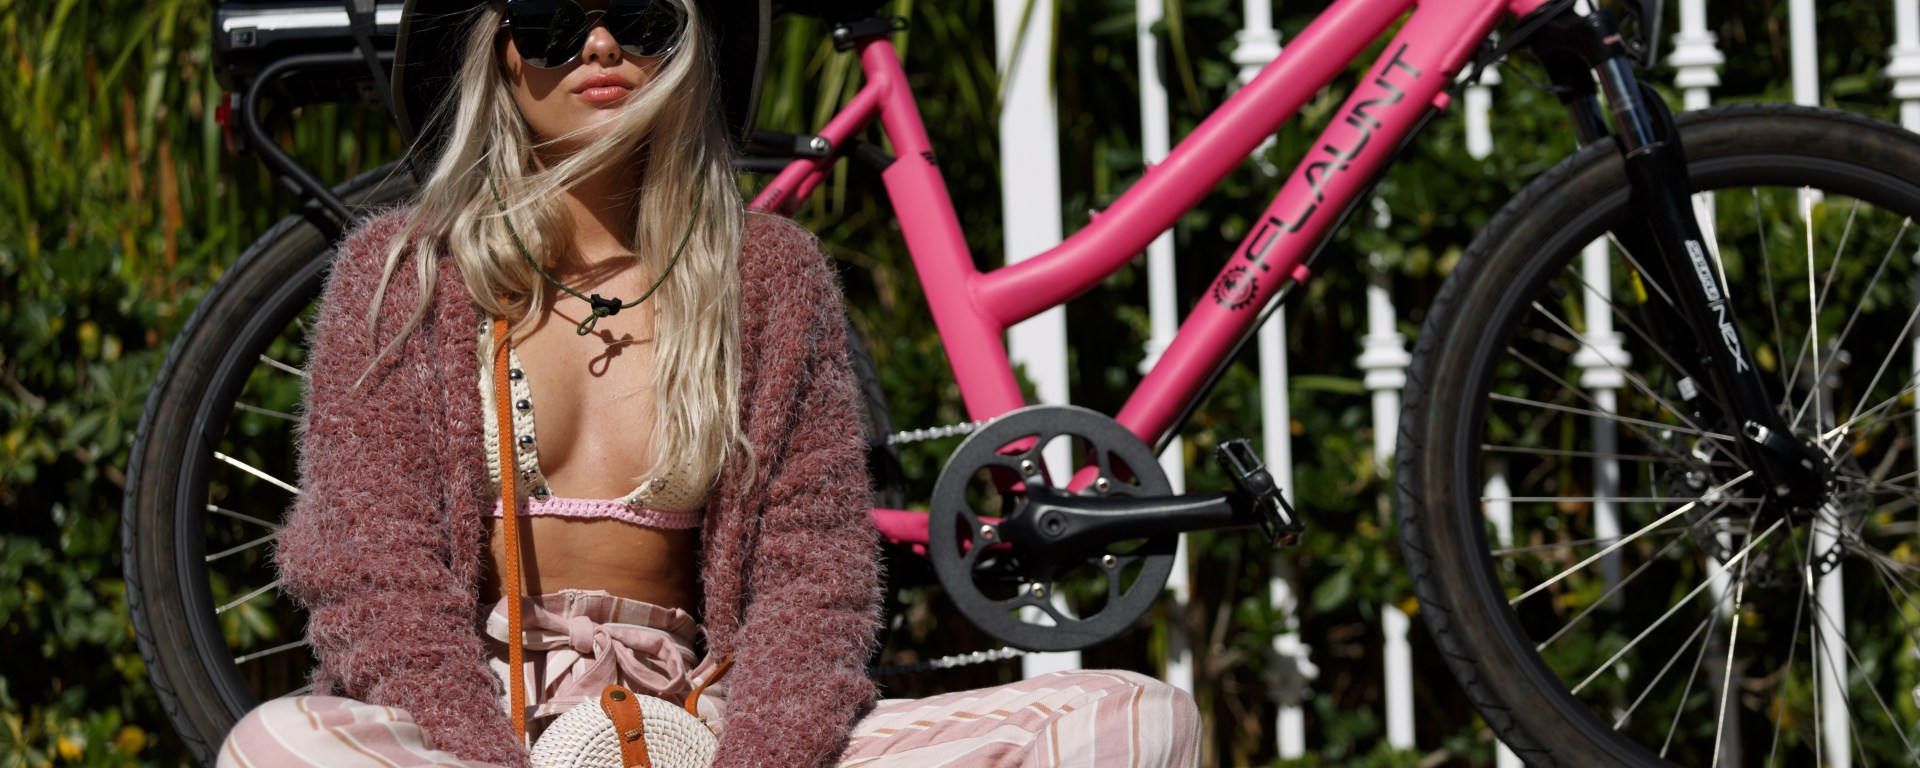 woman in bikini, sweater and black bucket hat sitting on ground in front of pink electric bicycle